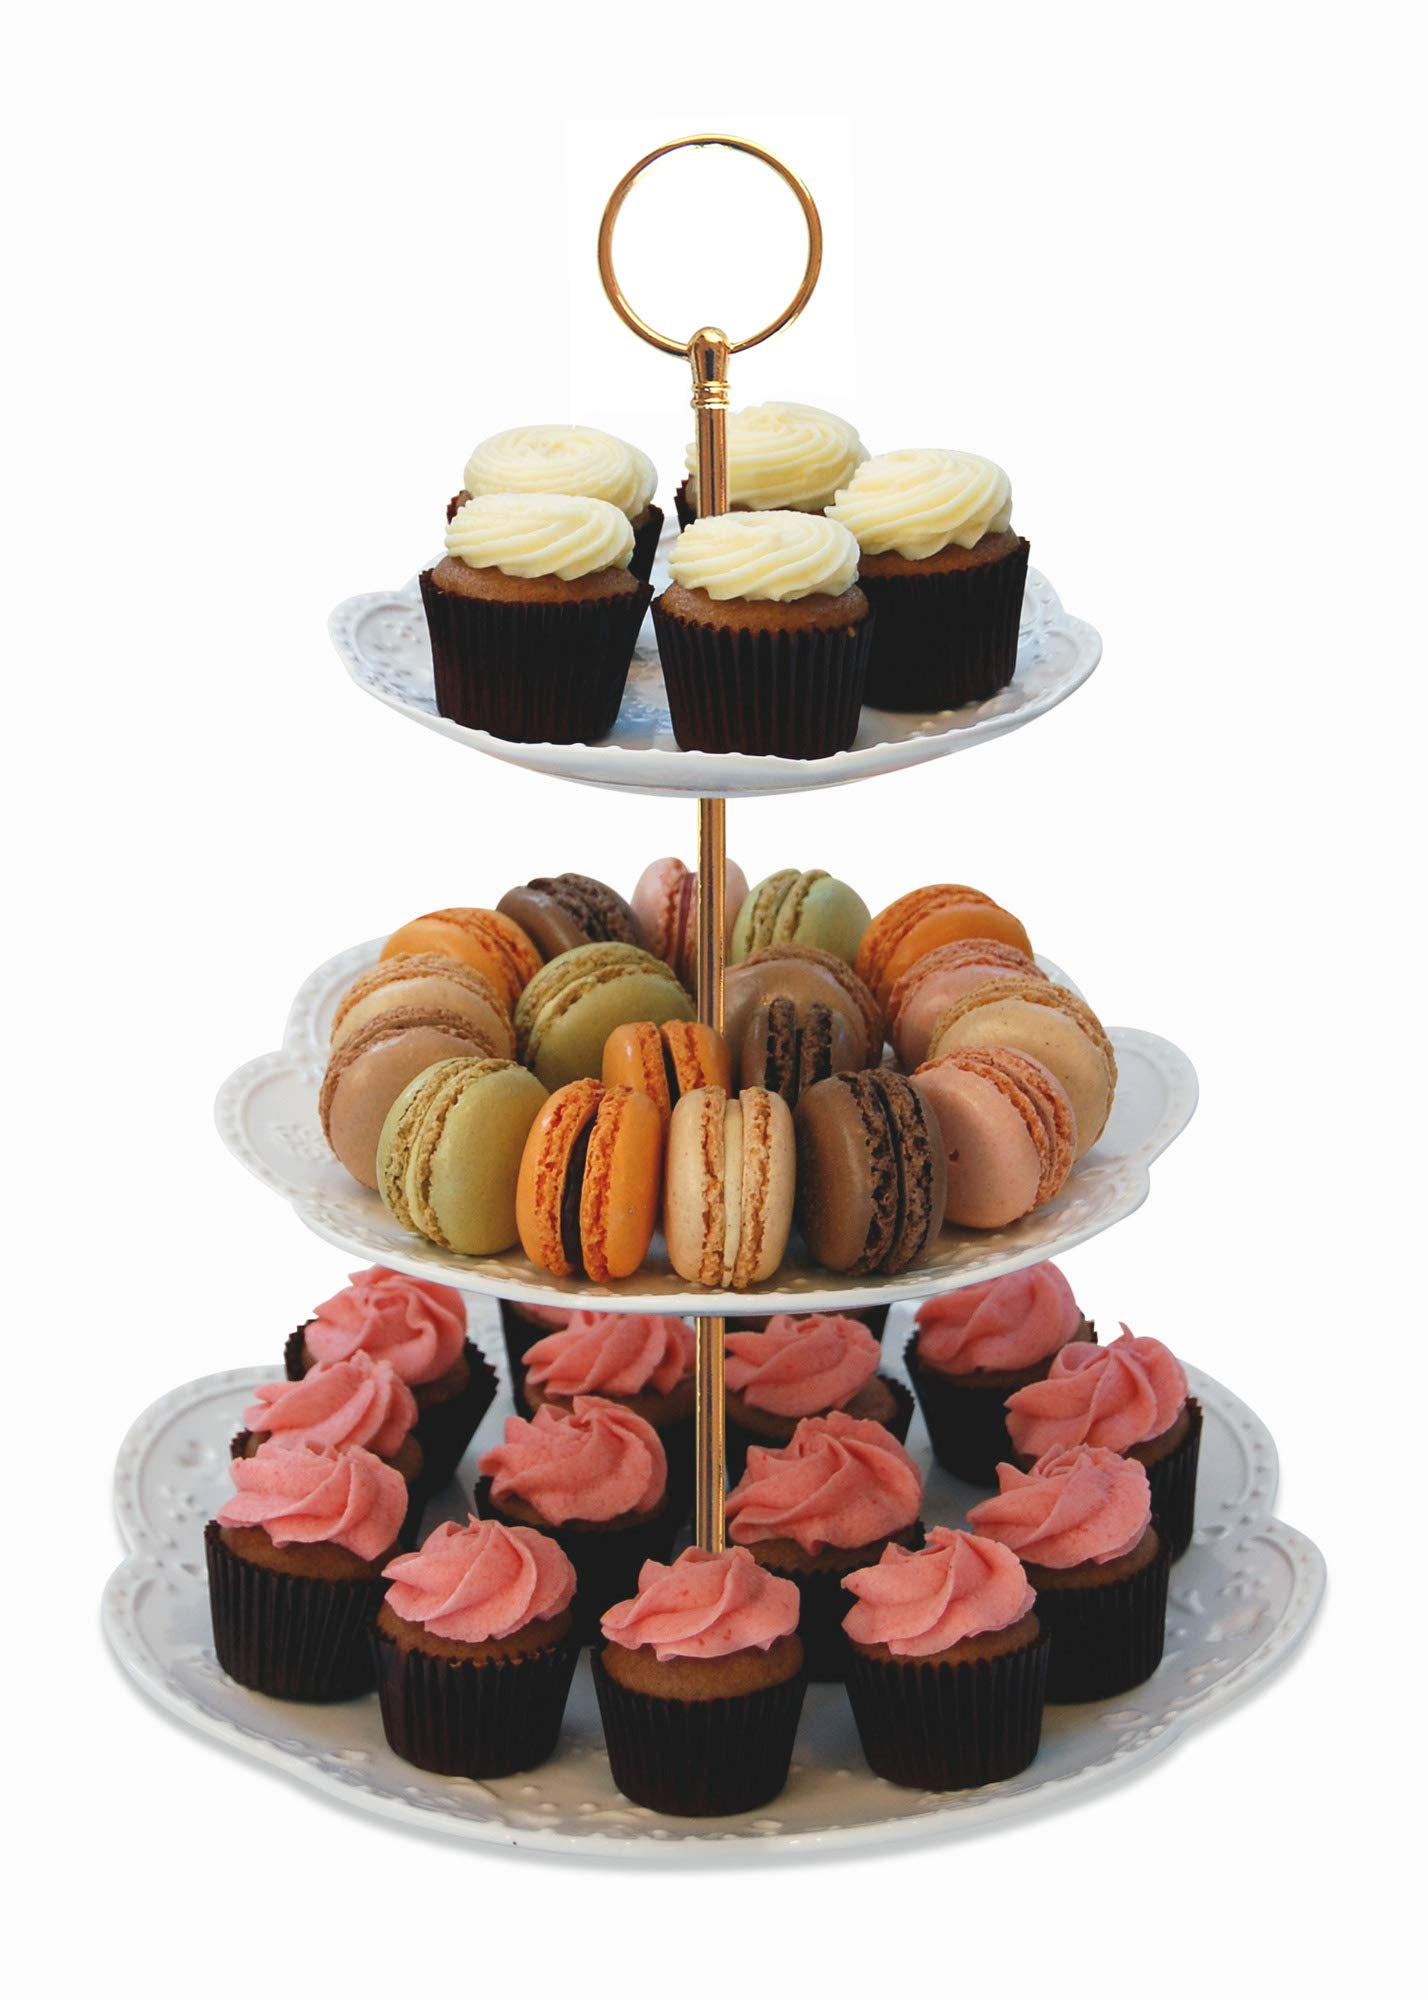 Sophia Interchangeable 2 or 3 Tier Cake Cupcake Dessert Display Stand - Serving Platter Includes Silver and Gold Hardware